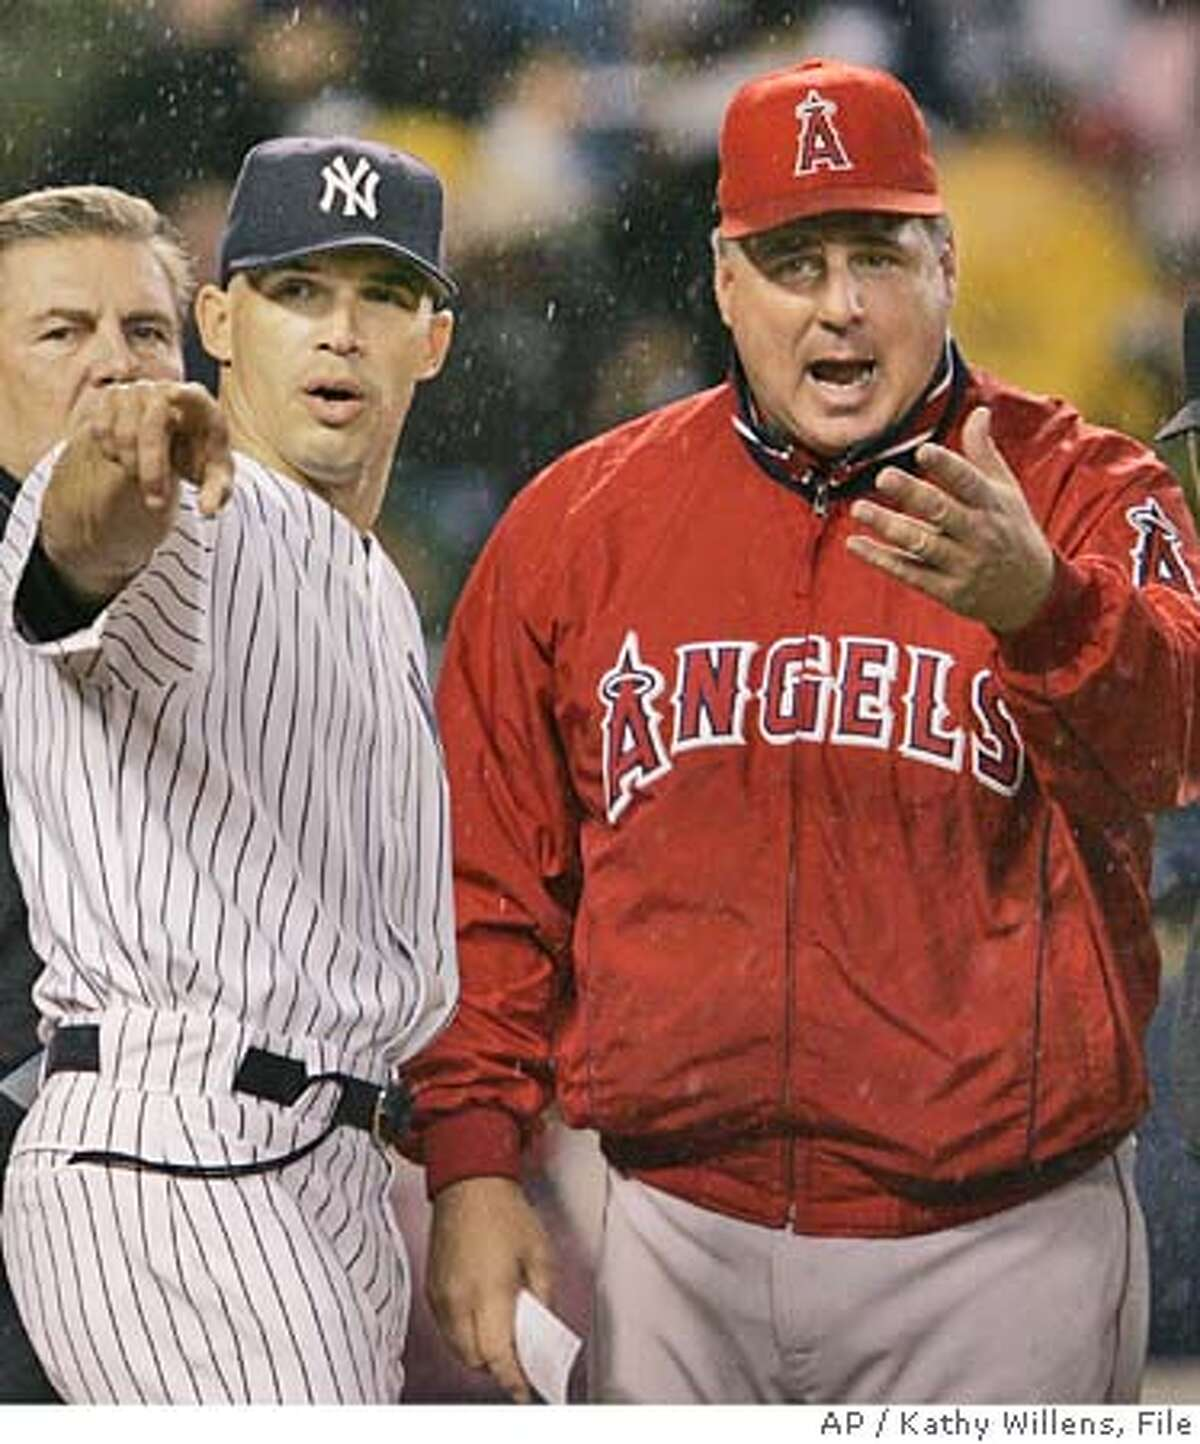 ** FILE ** New York Yankees bench coach Joe Girardi, left, and Anaheim Angels manager Mike Scioscia have a discussion at home plate prior to Game Four of the American League Division Series, Oct. 7, 2005, in New York. Girardi has no managerial experience, which may soon change. The Yankees' bench coach interviewed Wednesday, Oct. 12, 2005 in New York with two teams seeking a manager: the Florida Marlins and Tampa Bay Devil Rays. (AP Photo/Kathy Willens)